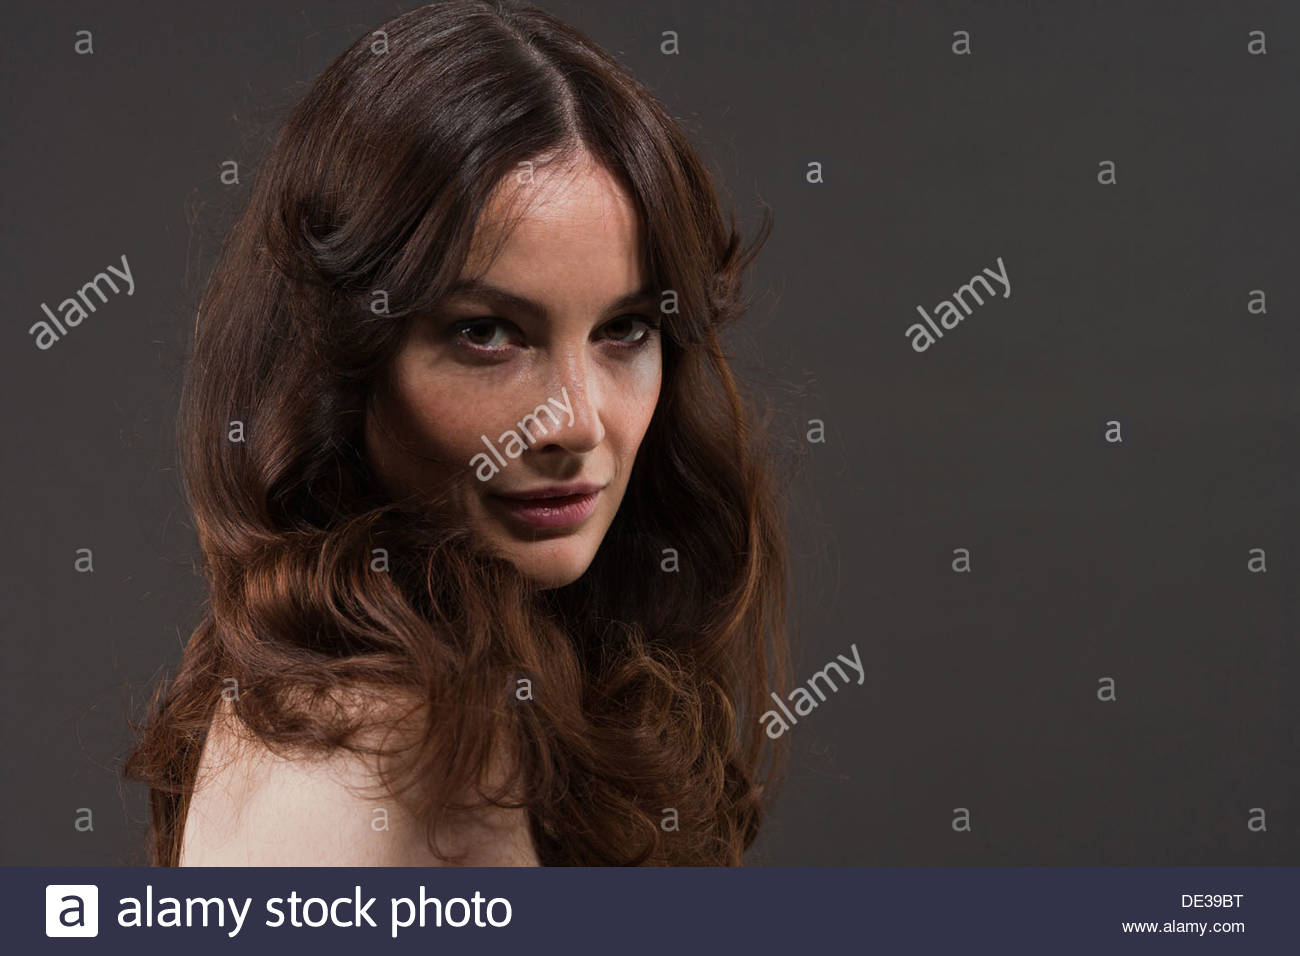 Pensive, bare chested woman - Stock Image